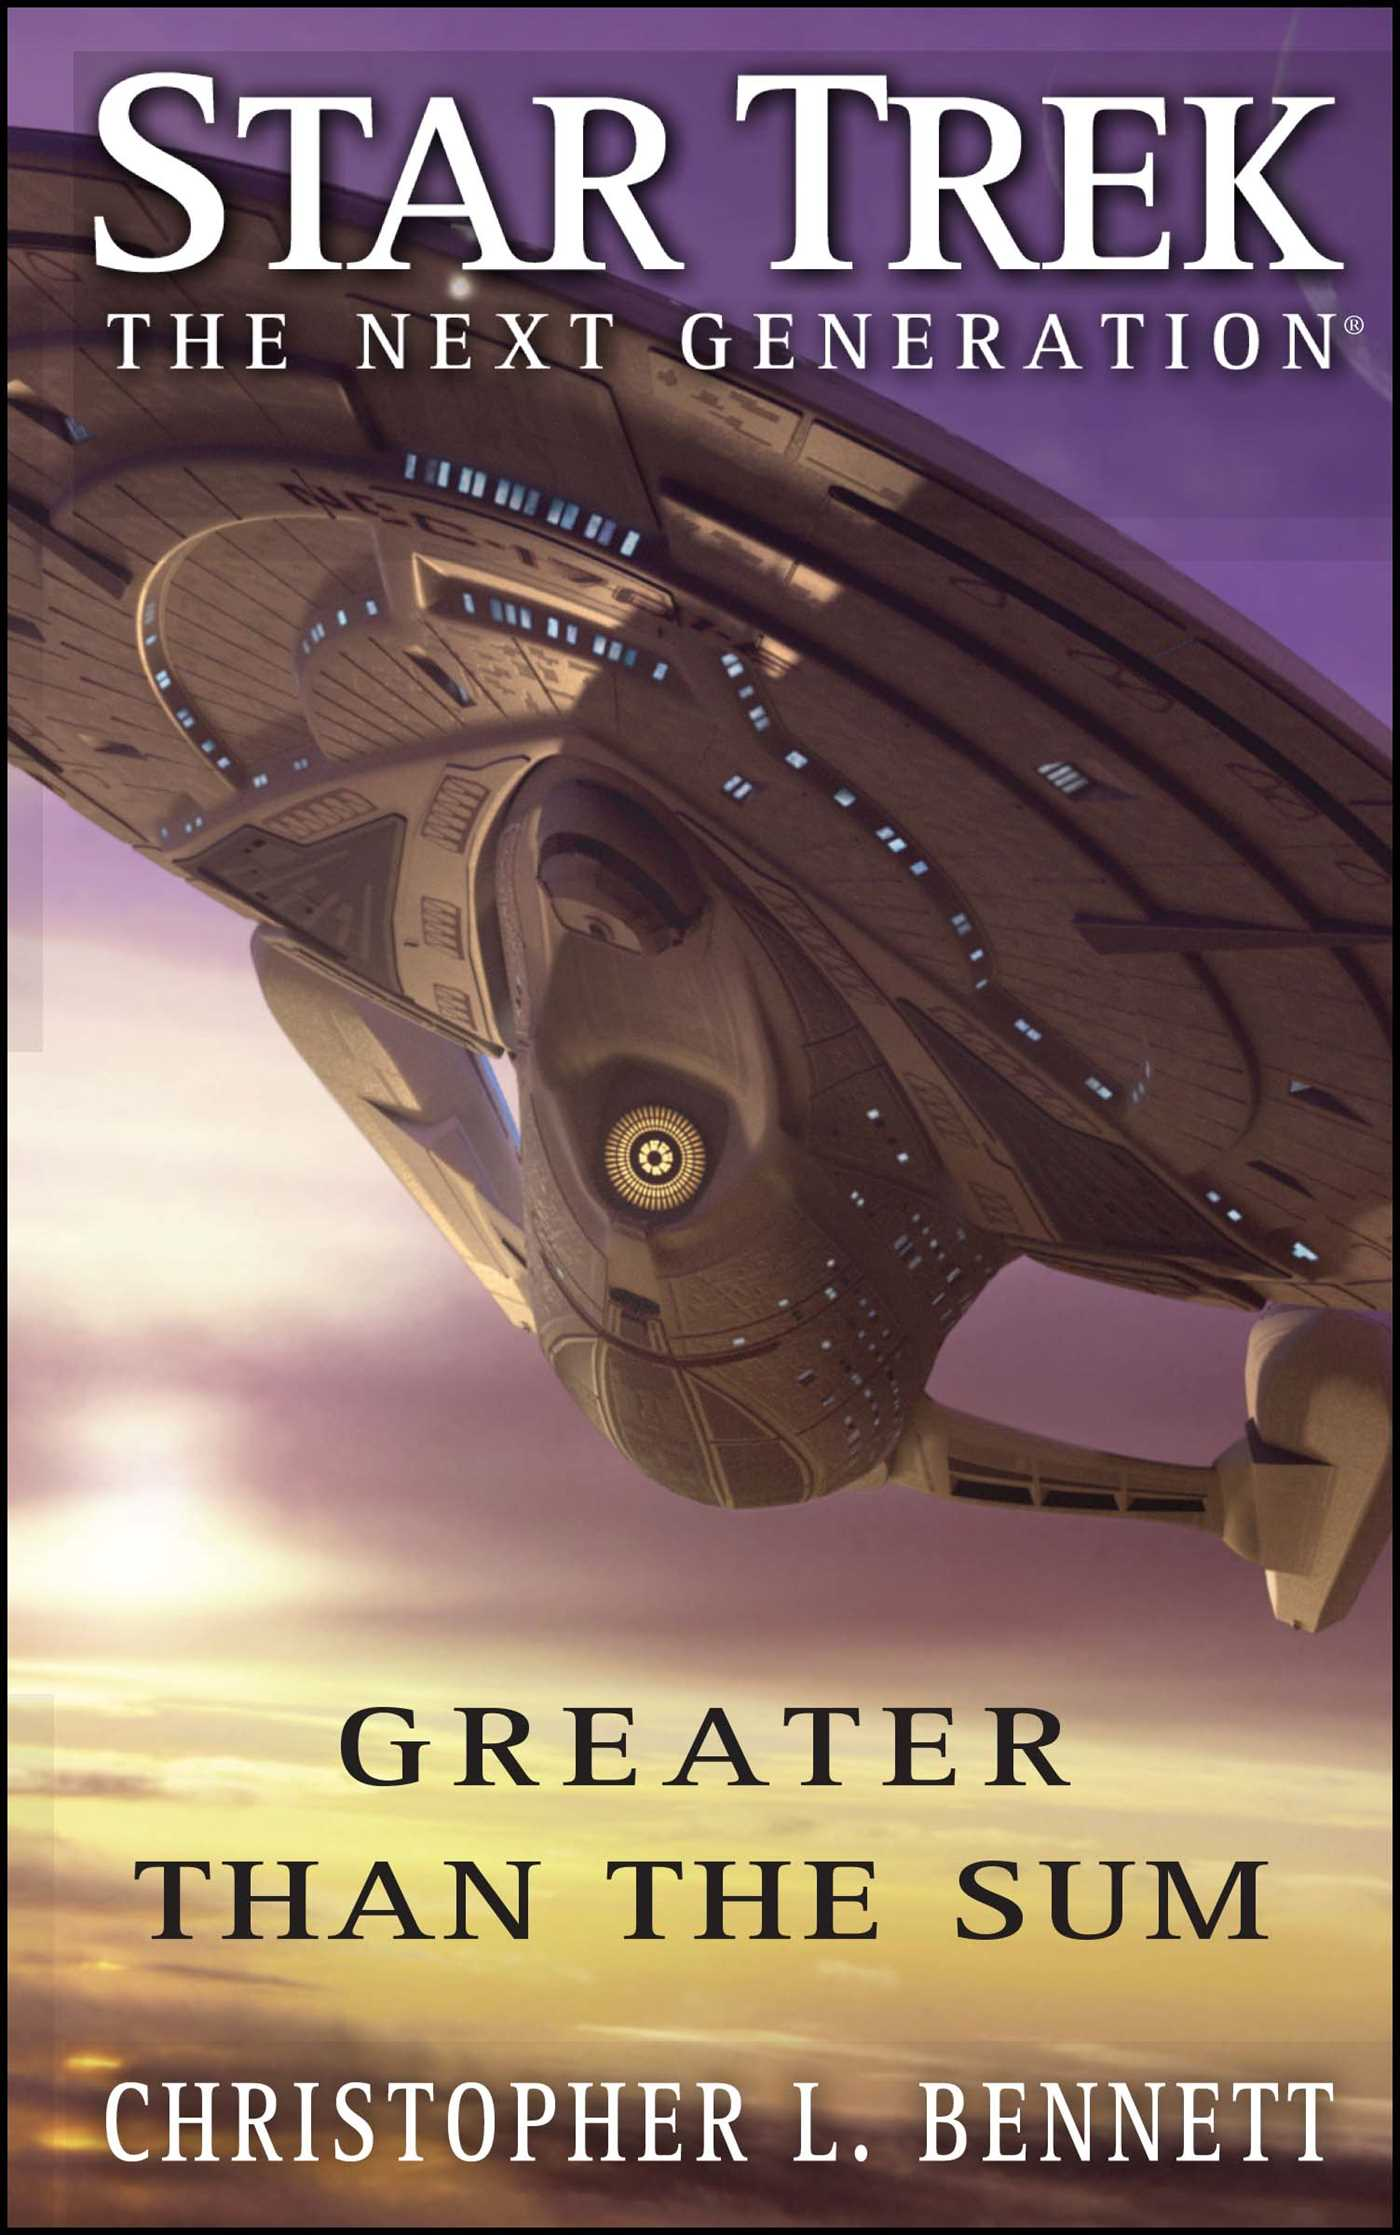 Star-trek-the-next-generation-greater-than-the-sum-9781416572169_hr